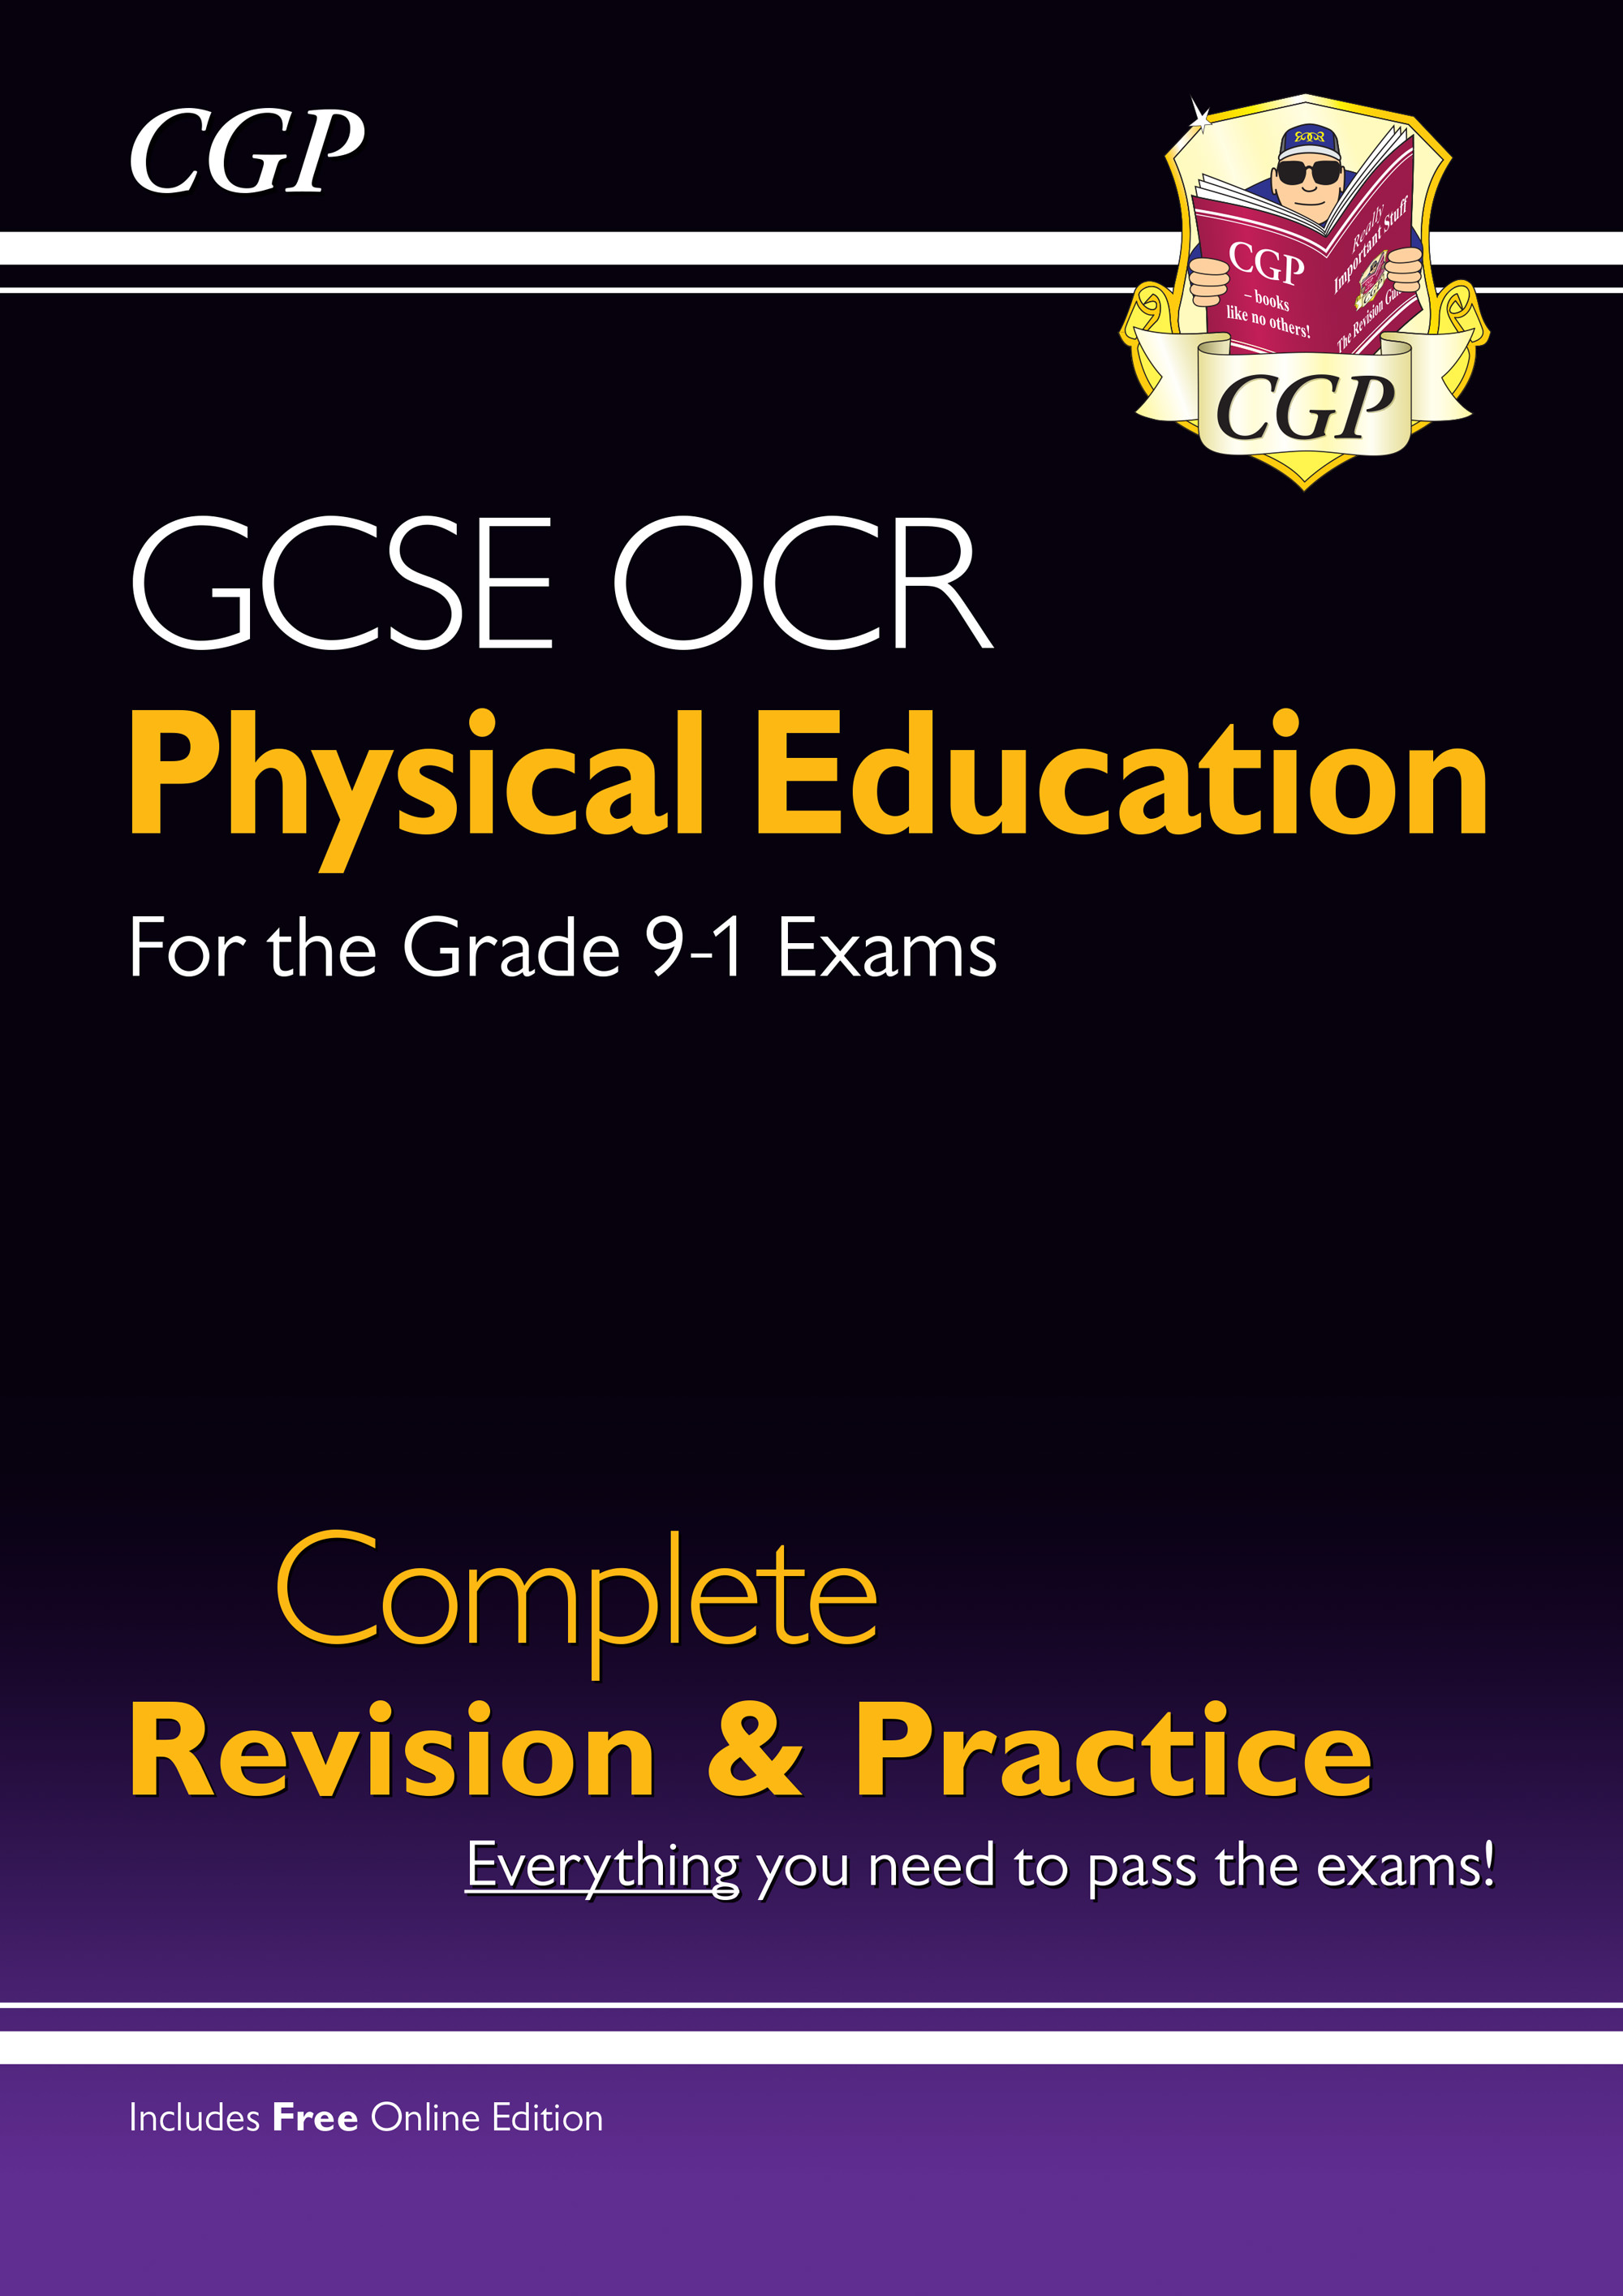 JRS41 - New Grade 9-1 GCSE Physical Education OCR Complete Revision & Practice (with Online Edition)